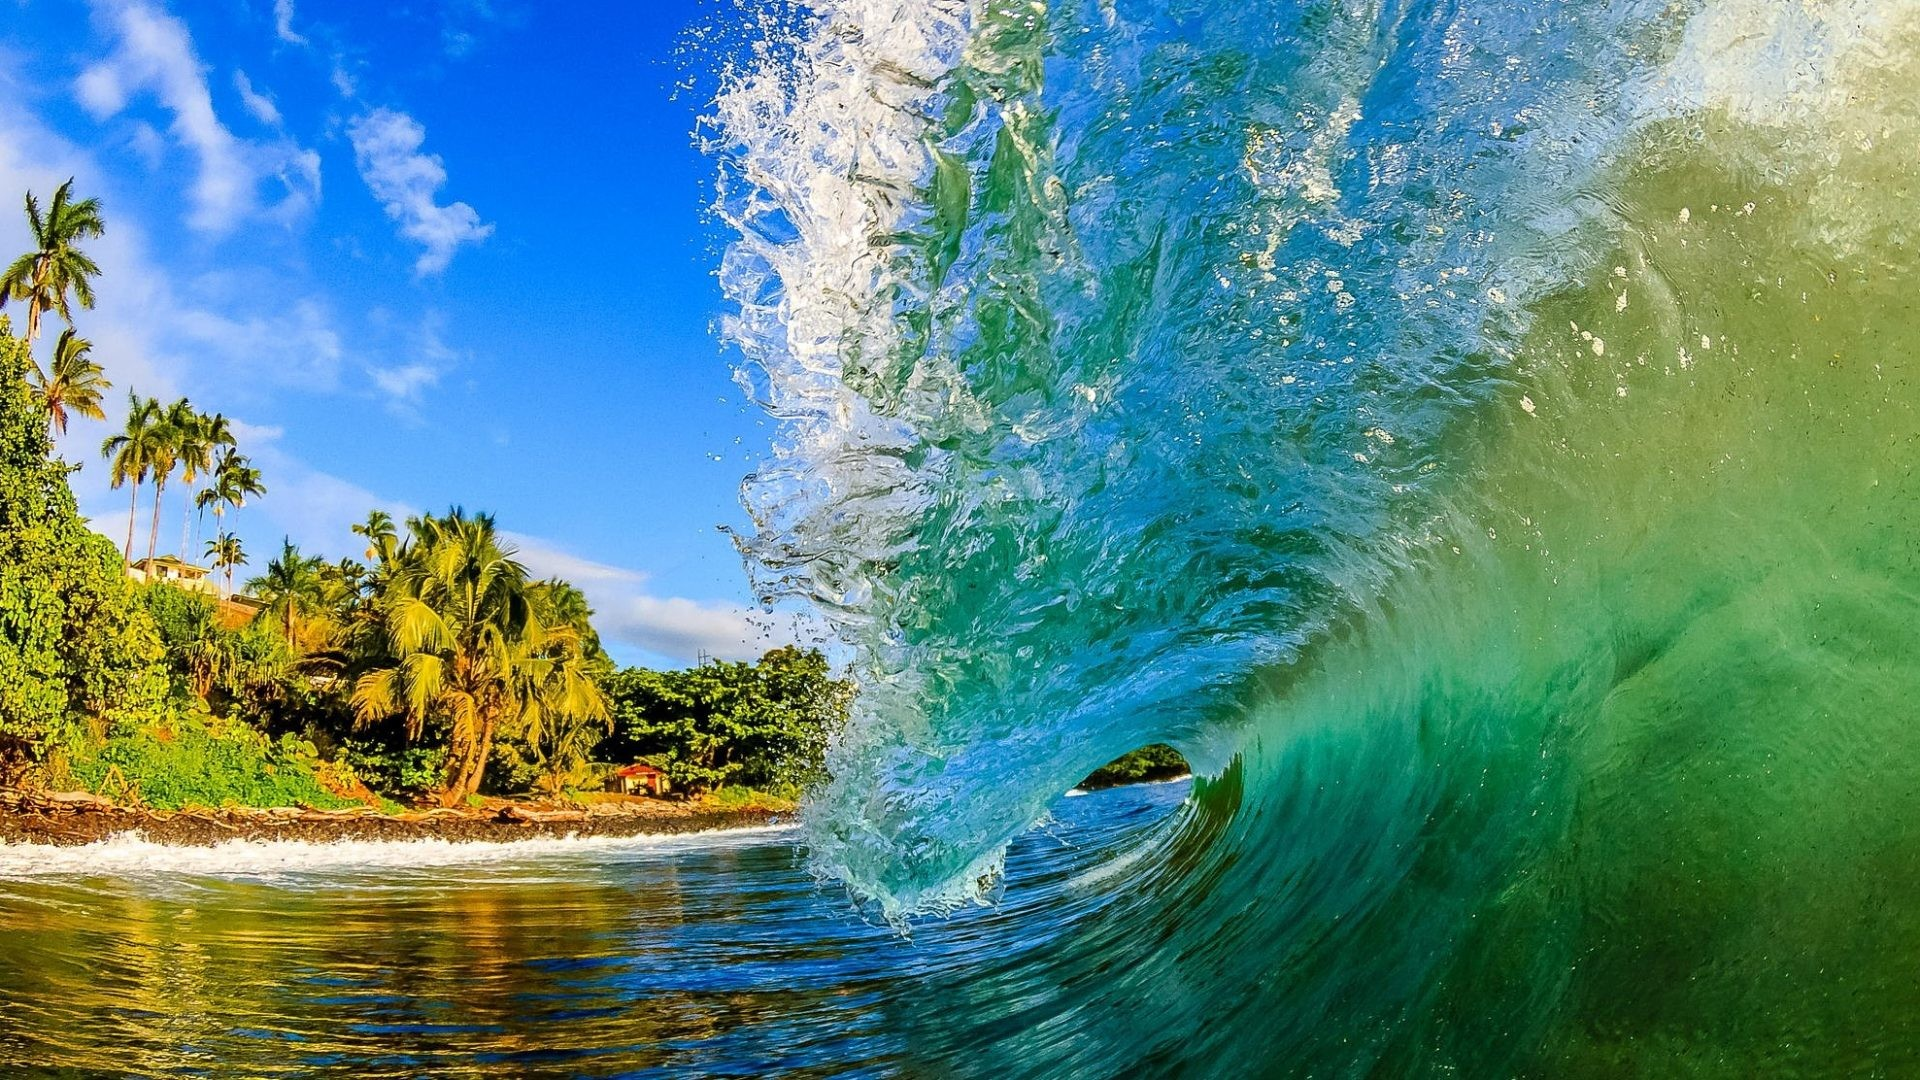 Beach Waves Wallpapers For Desktop Beach Waves: Tropical Waves Screensavers And Wallpaper (55+ Images